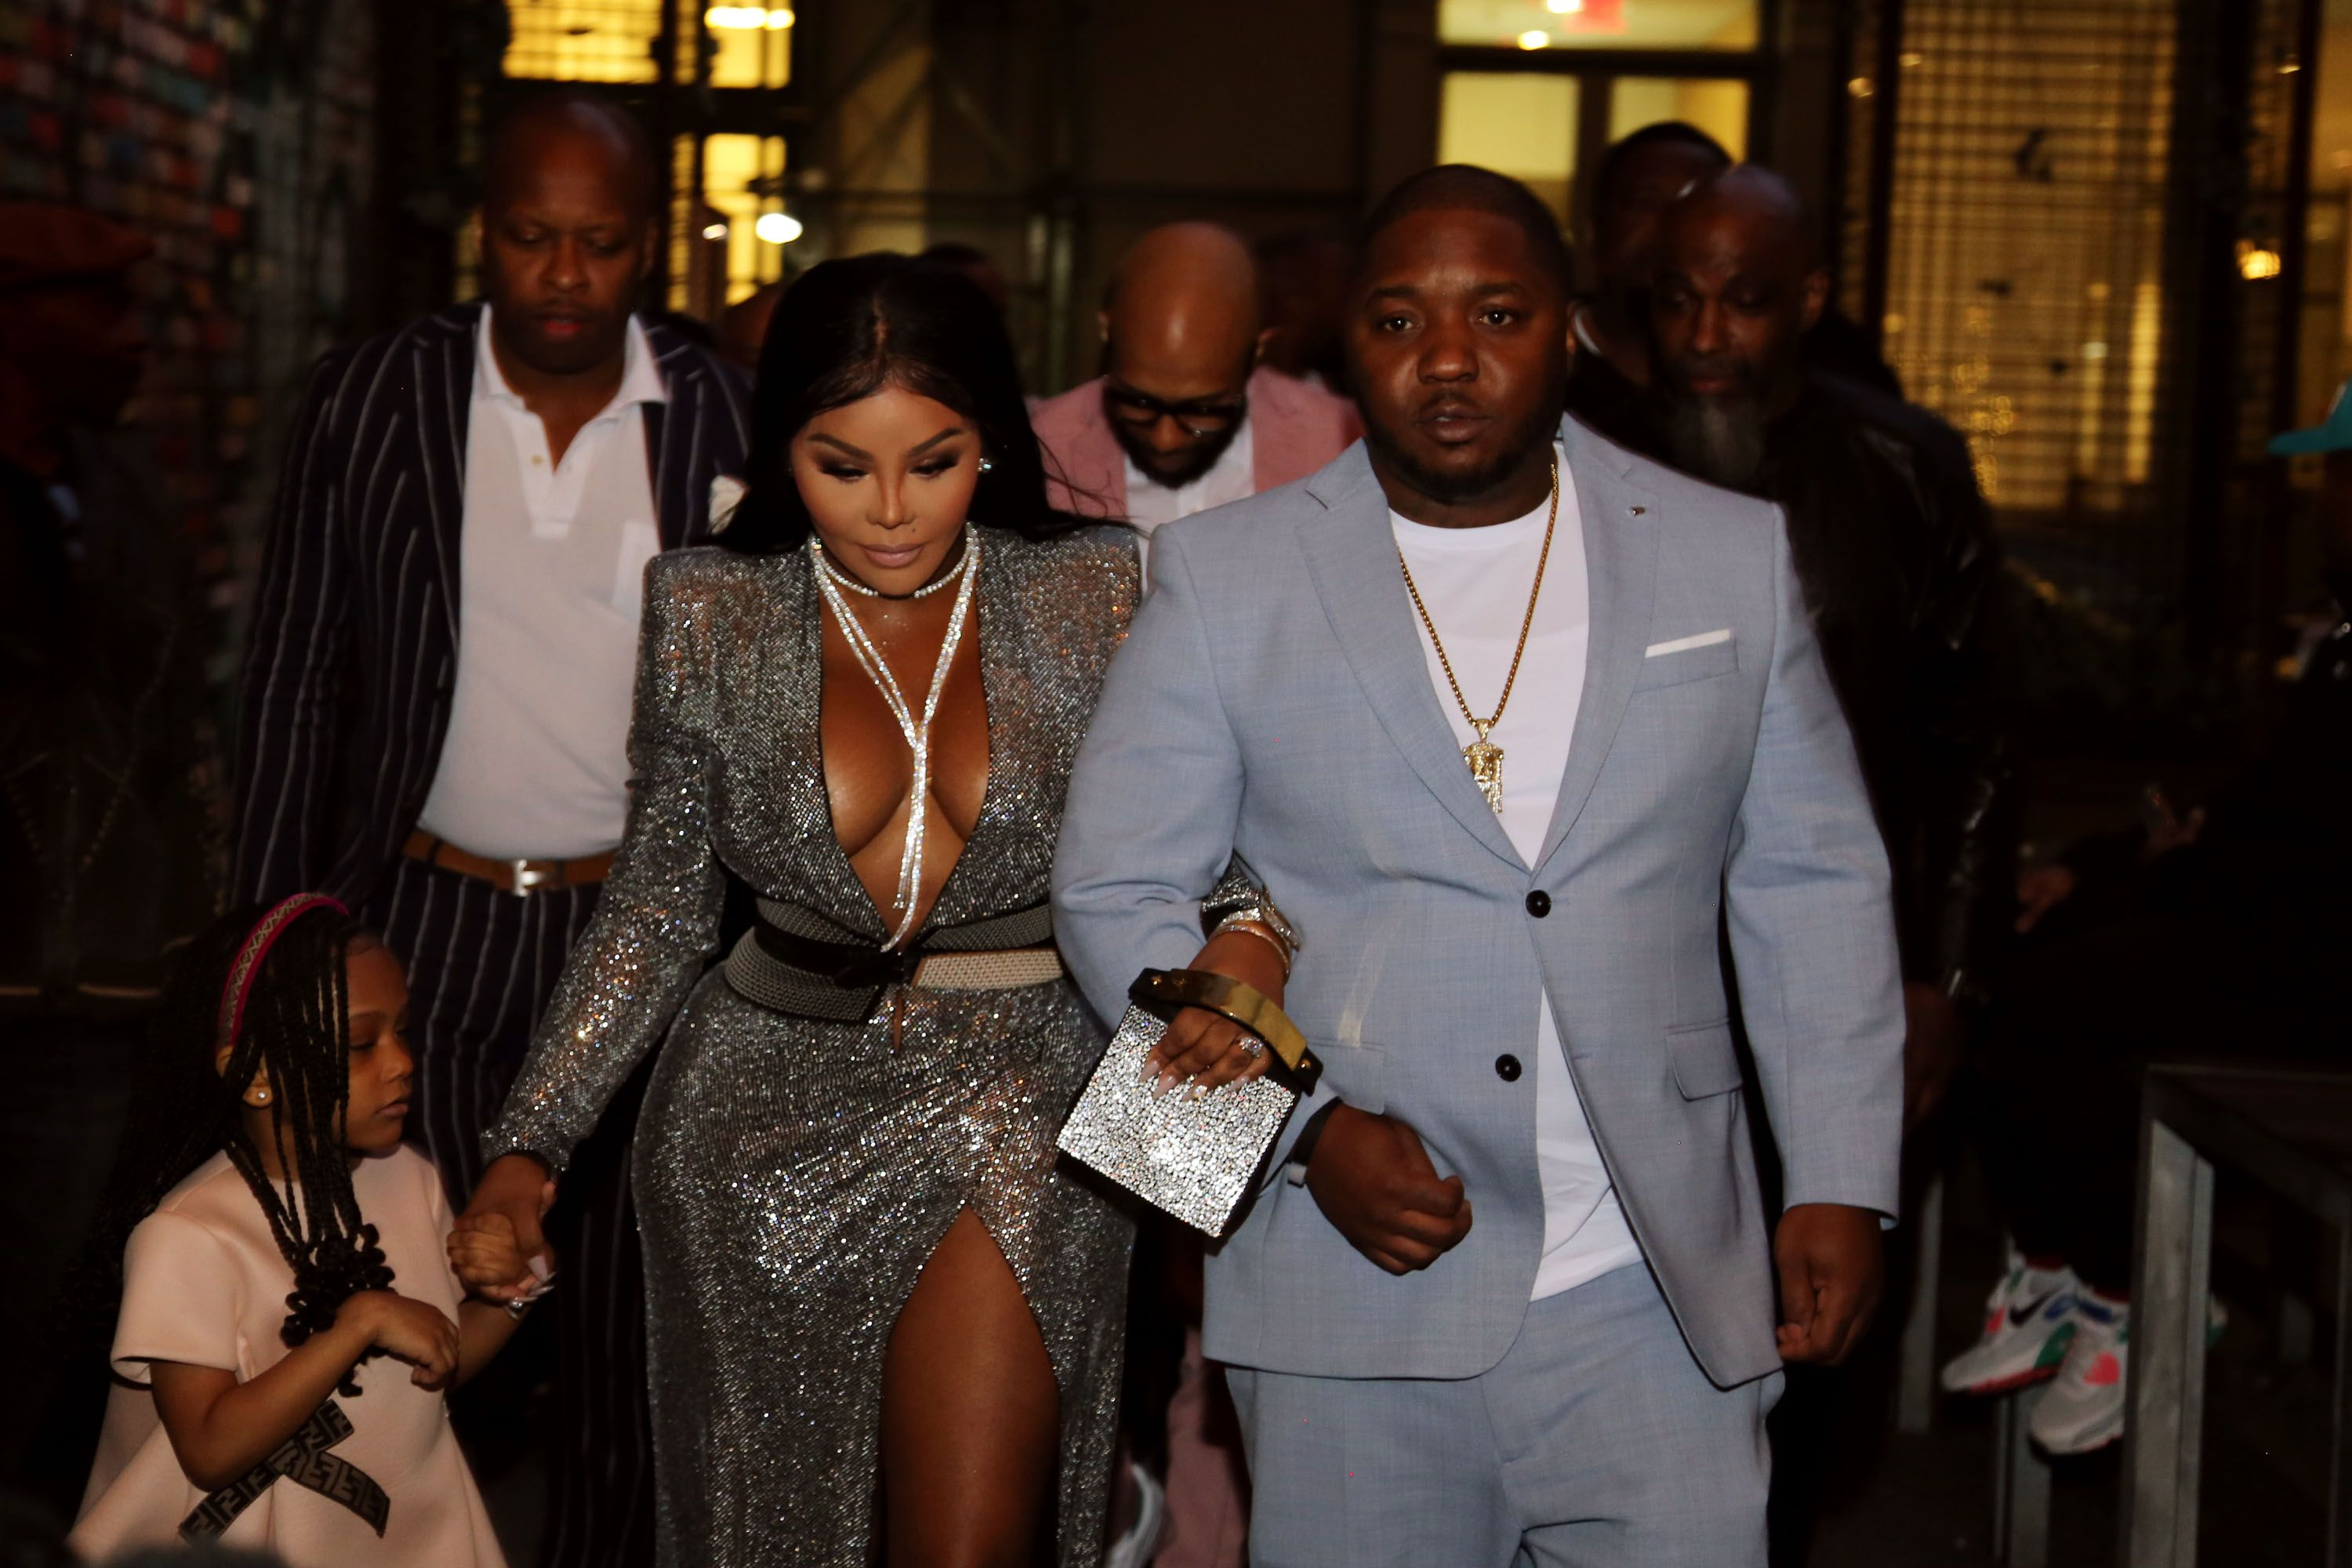 Lil' Kim with daughter Royal Reign and Lil' Cease at her 1st Annual B.I.G. Family Dinner in 2019 in New York City | Source: Getty Images